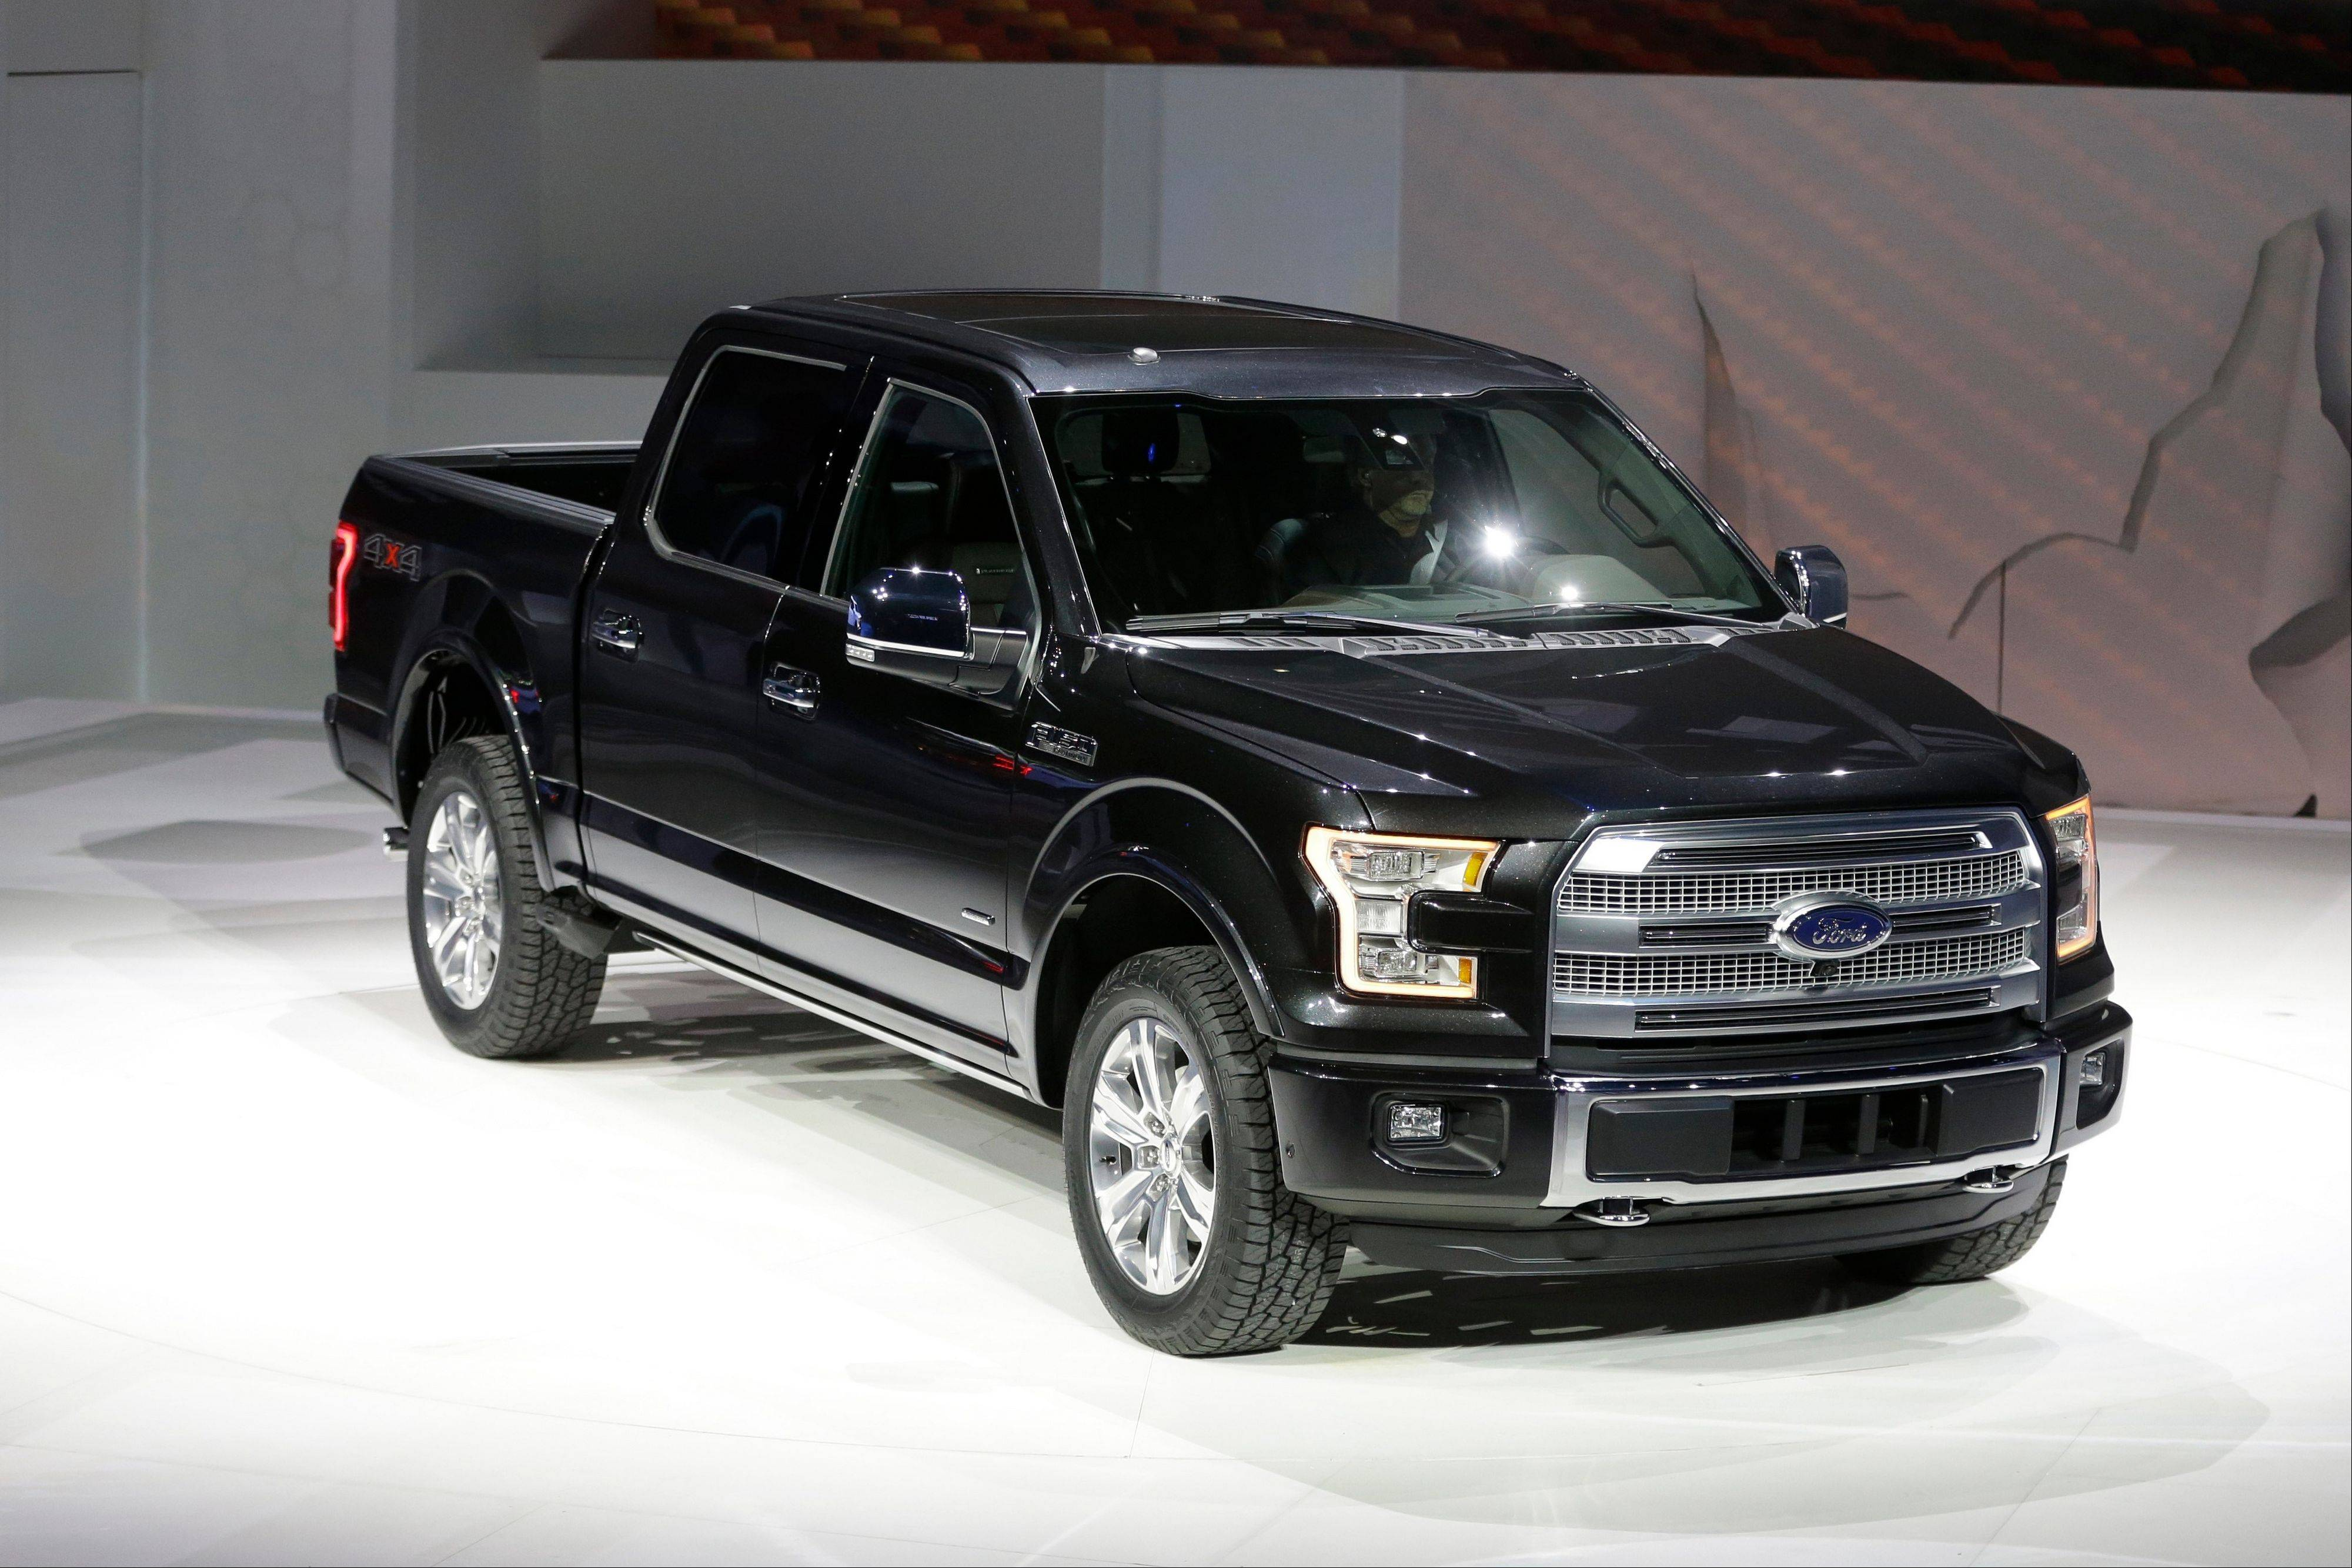 Ford's bold new F-150 truck built of aluminum alloys is sure to attract attention at the Chicago Auto Show.